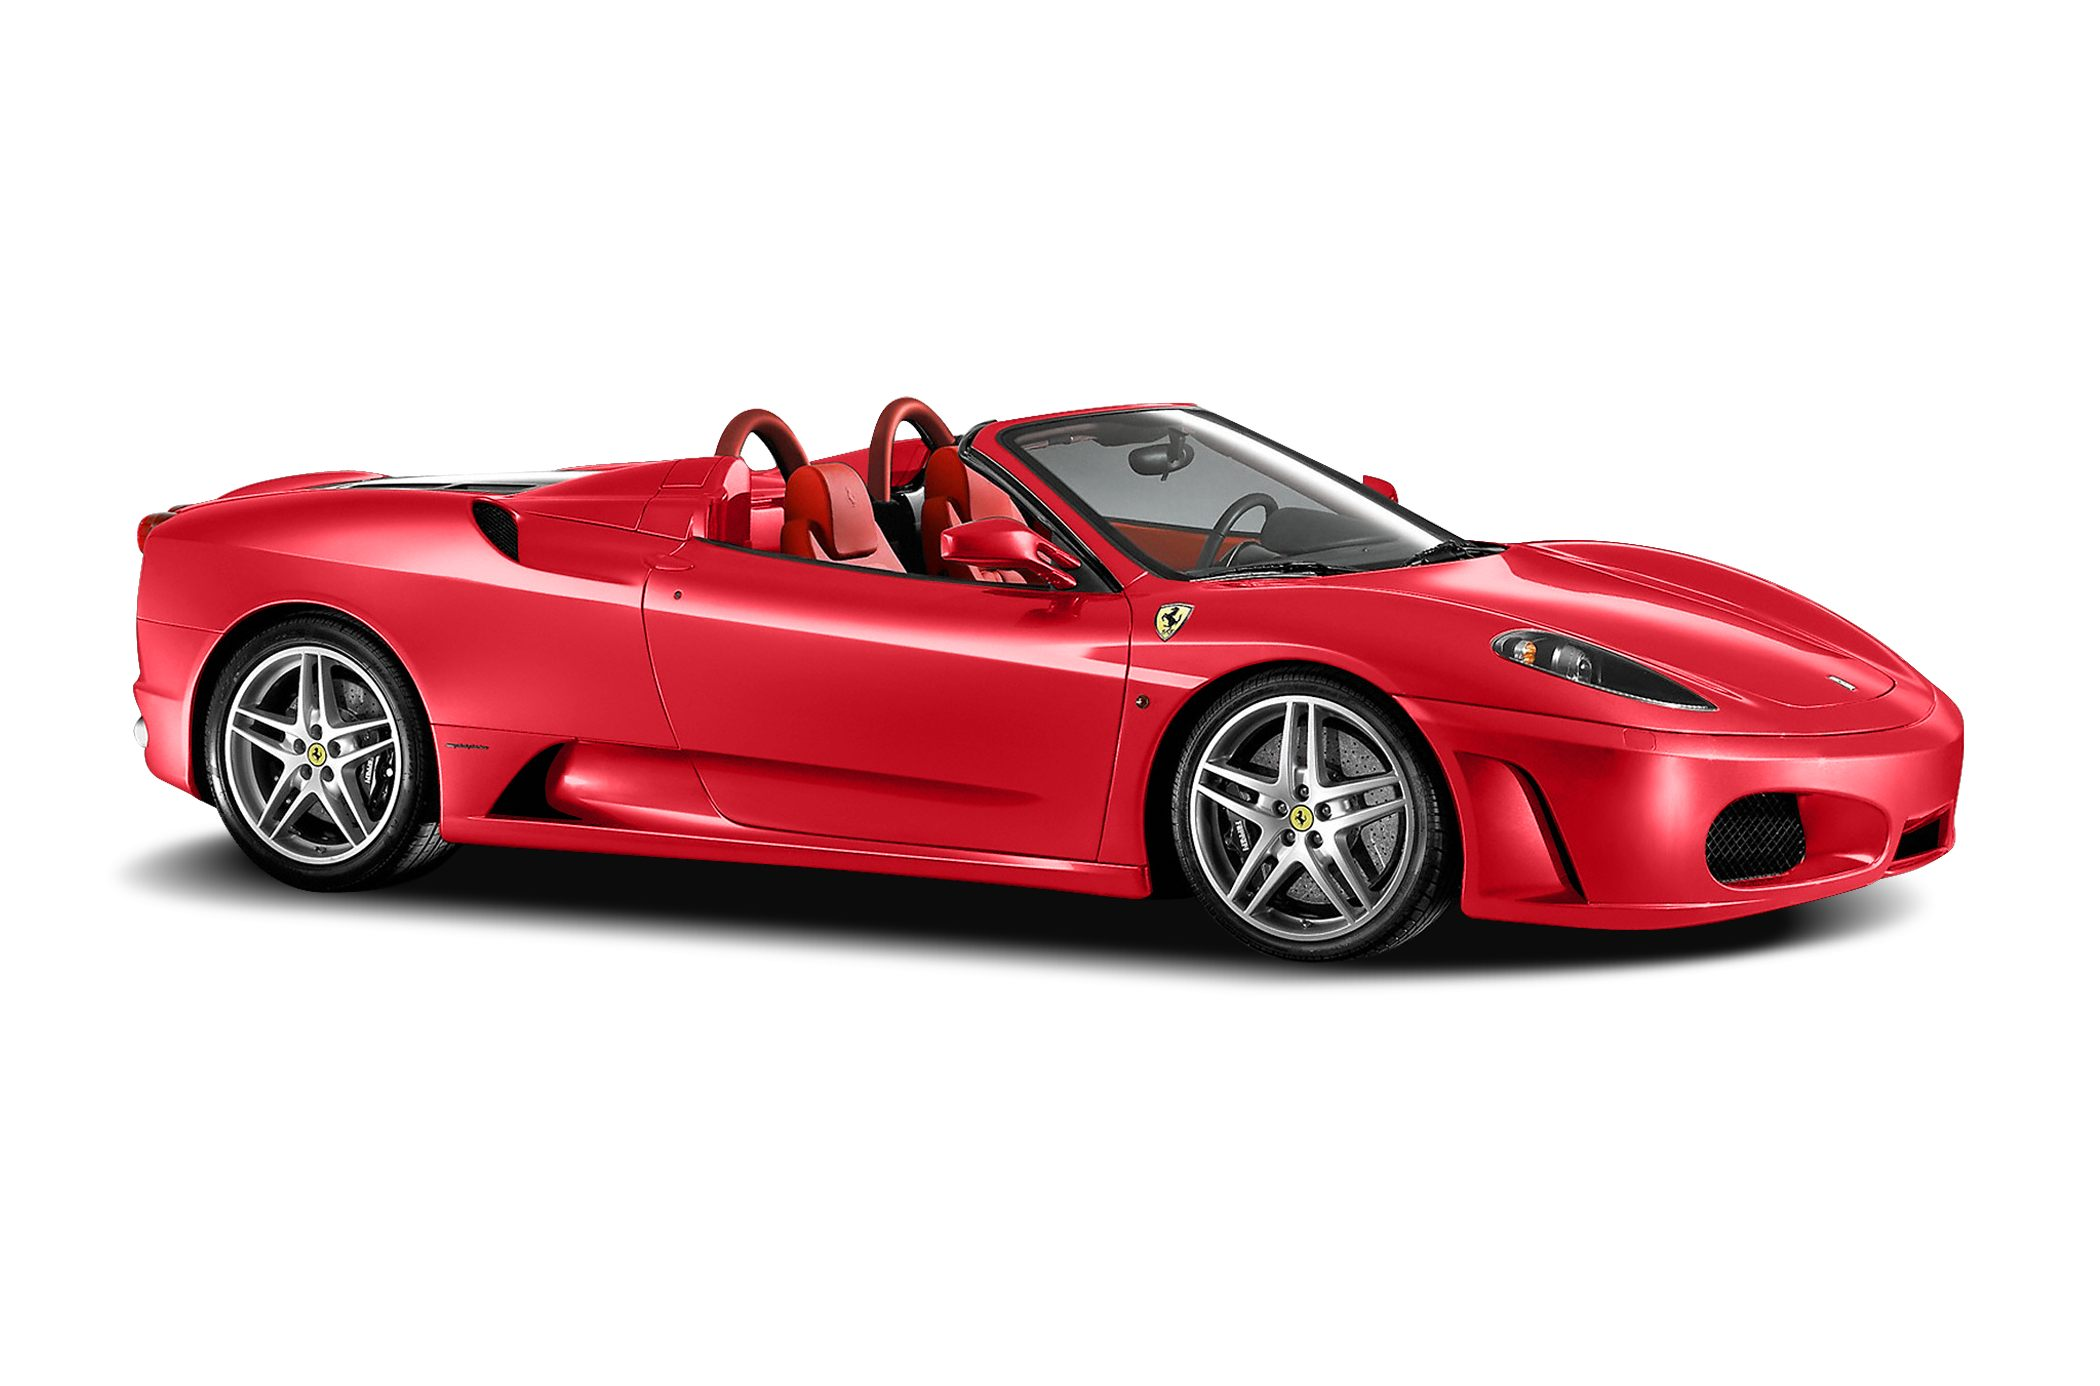 2008 Ferrari F430 Spider 2dr Convertible Pricing And Options